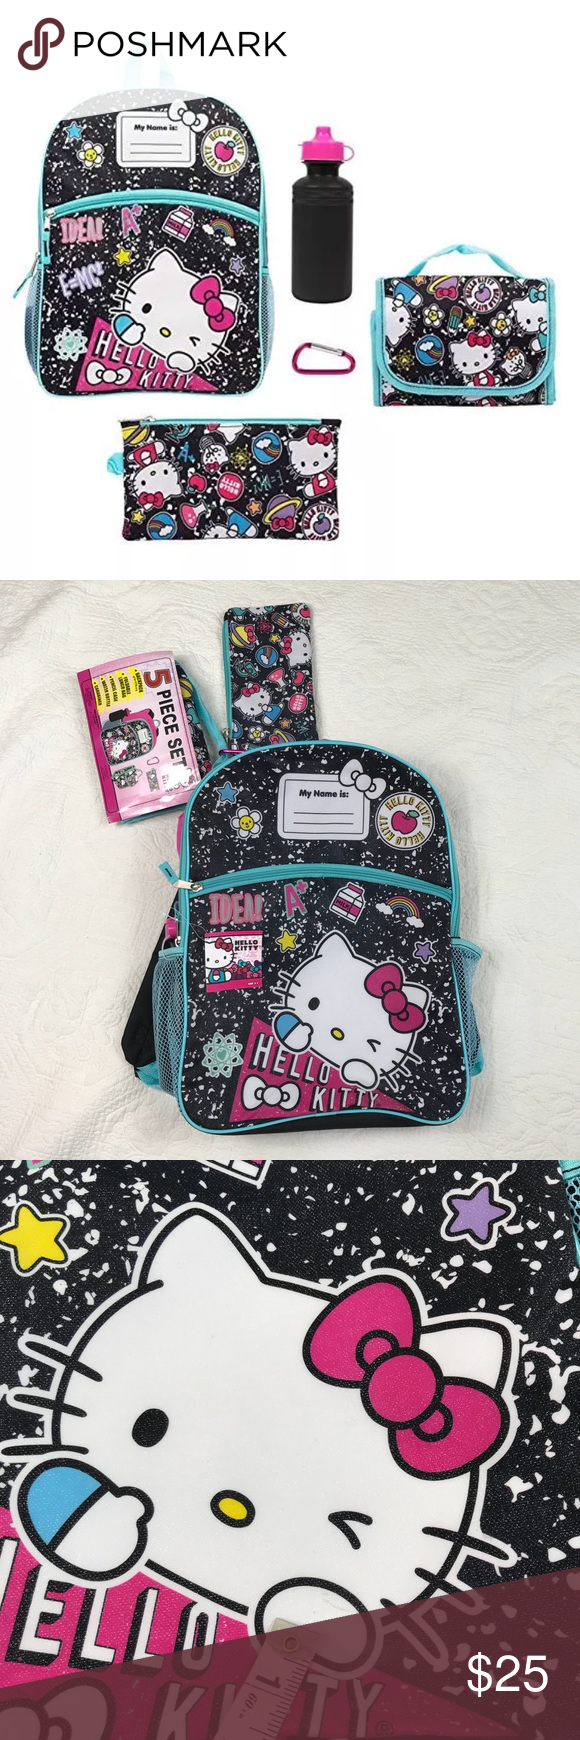 b942e2e4e HELLO KITTY 5 Piece Backpack Set NWT Great condition, small mark pictured  on front. Hello Kitty Accessories Bags